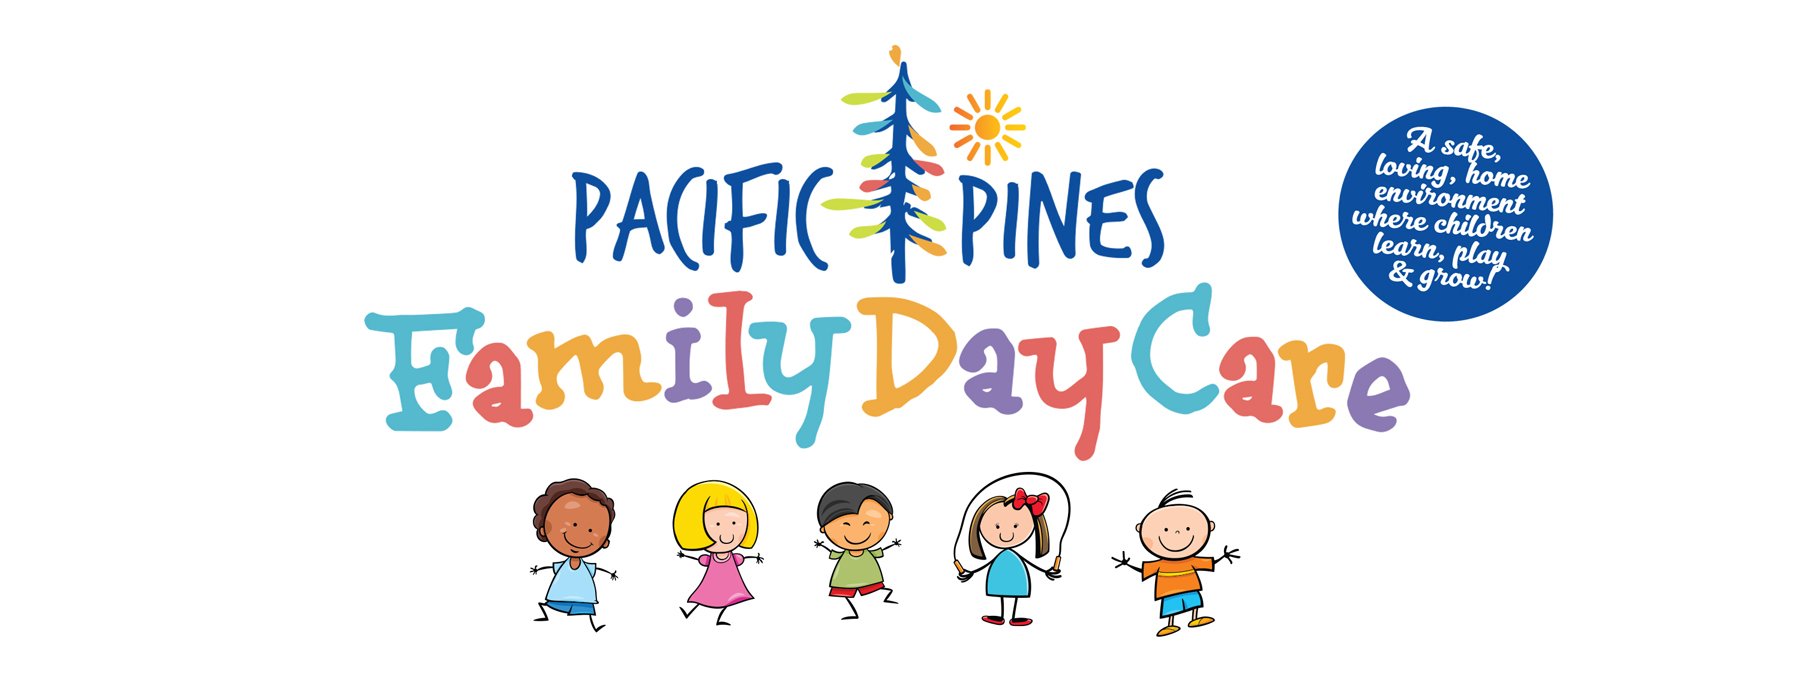 Pacific Pines Family Day Care Logo on white background isolated